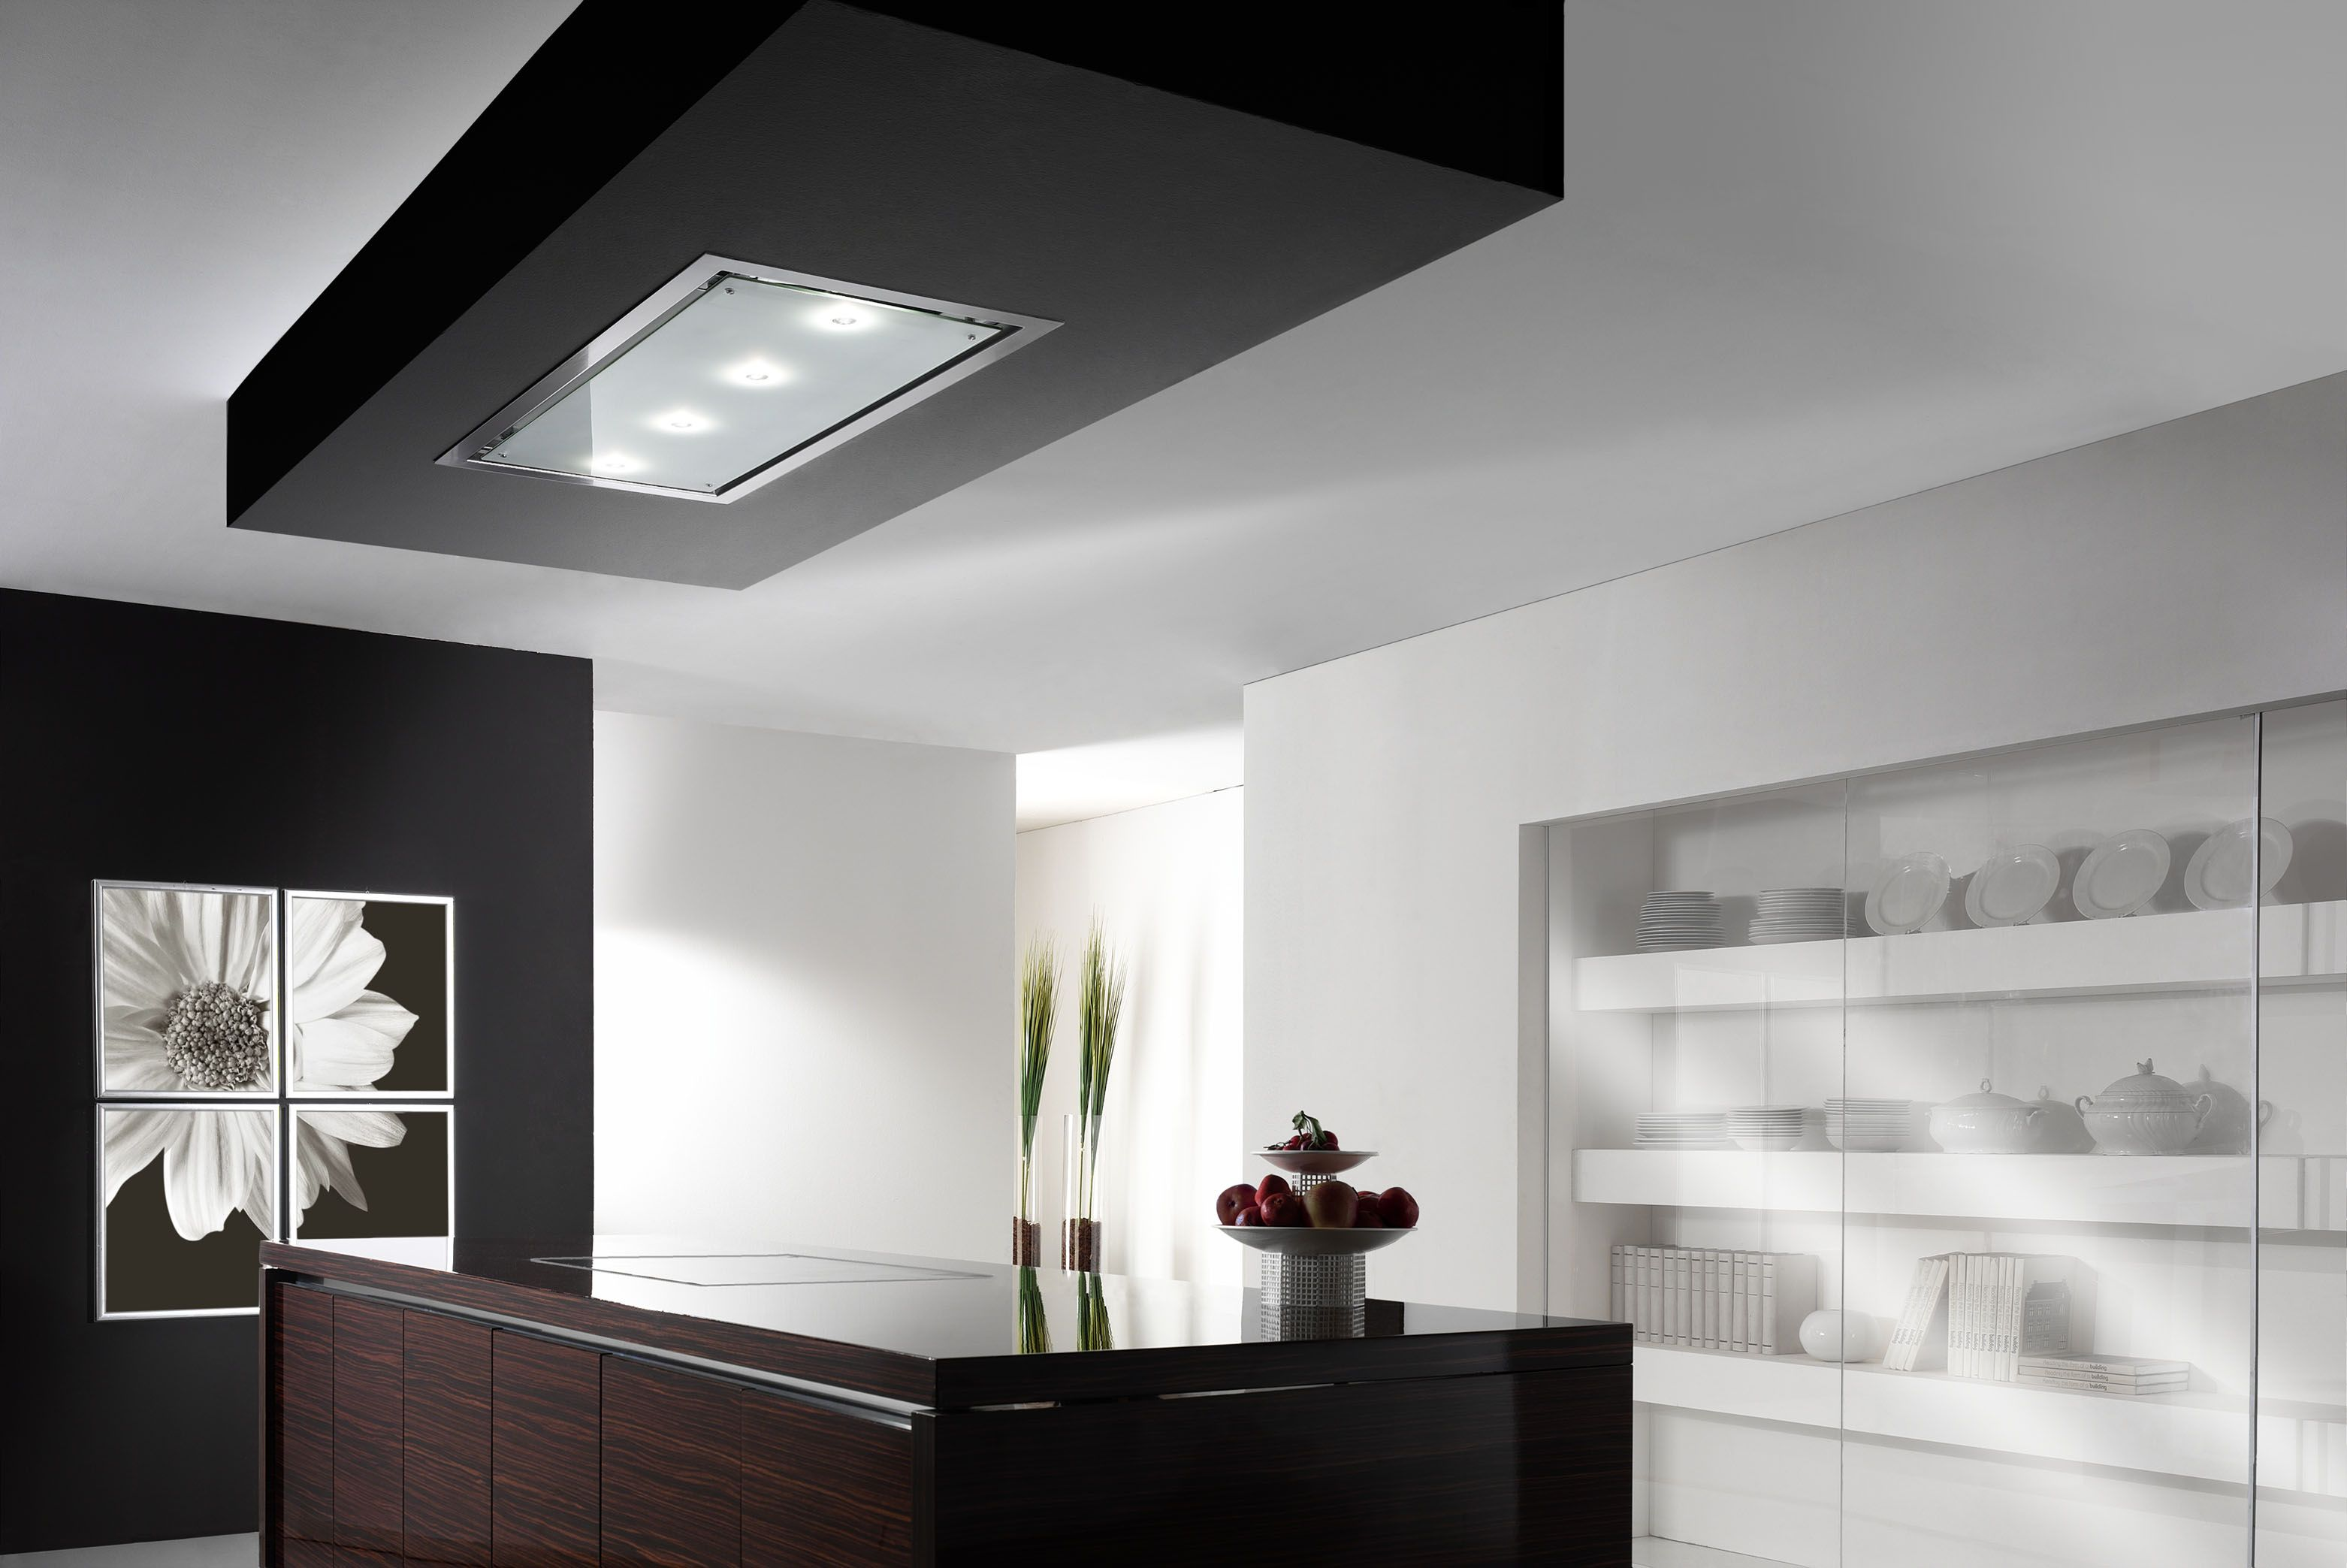 eisinger cover line the ceiling mounted extractor hood with class kitchen designs. Black Bedroom Furniture Sets. Home Design Ideas